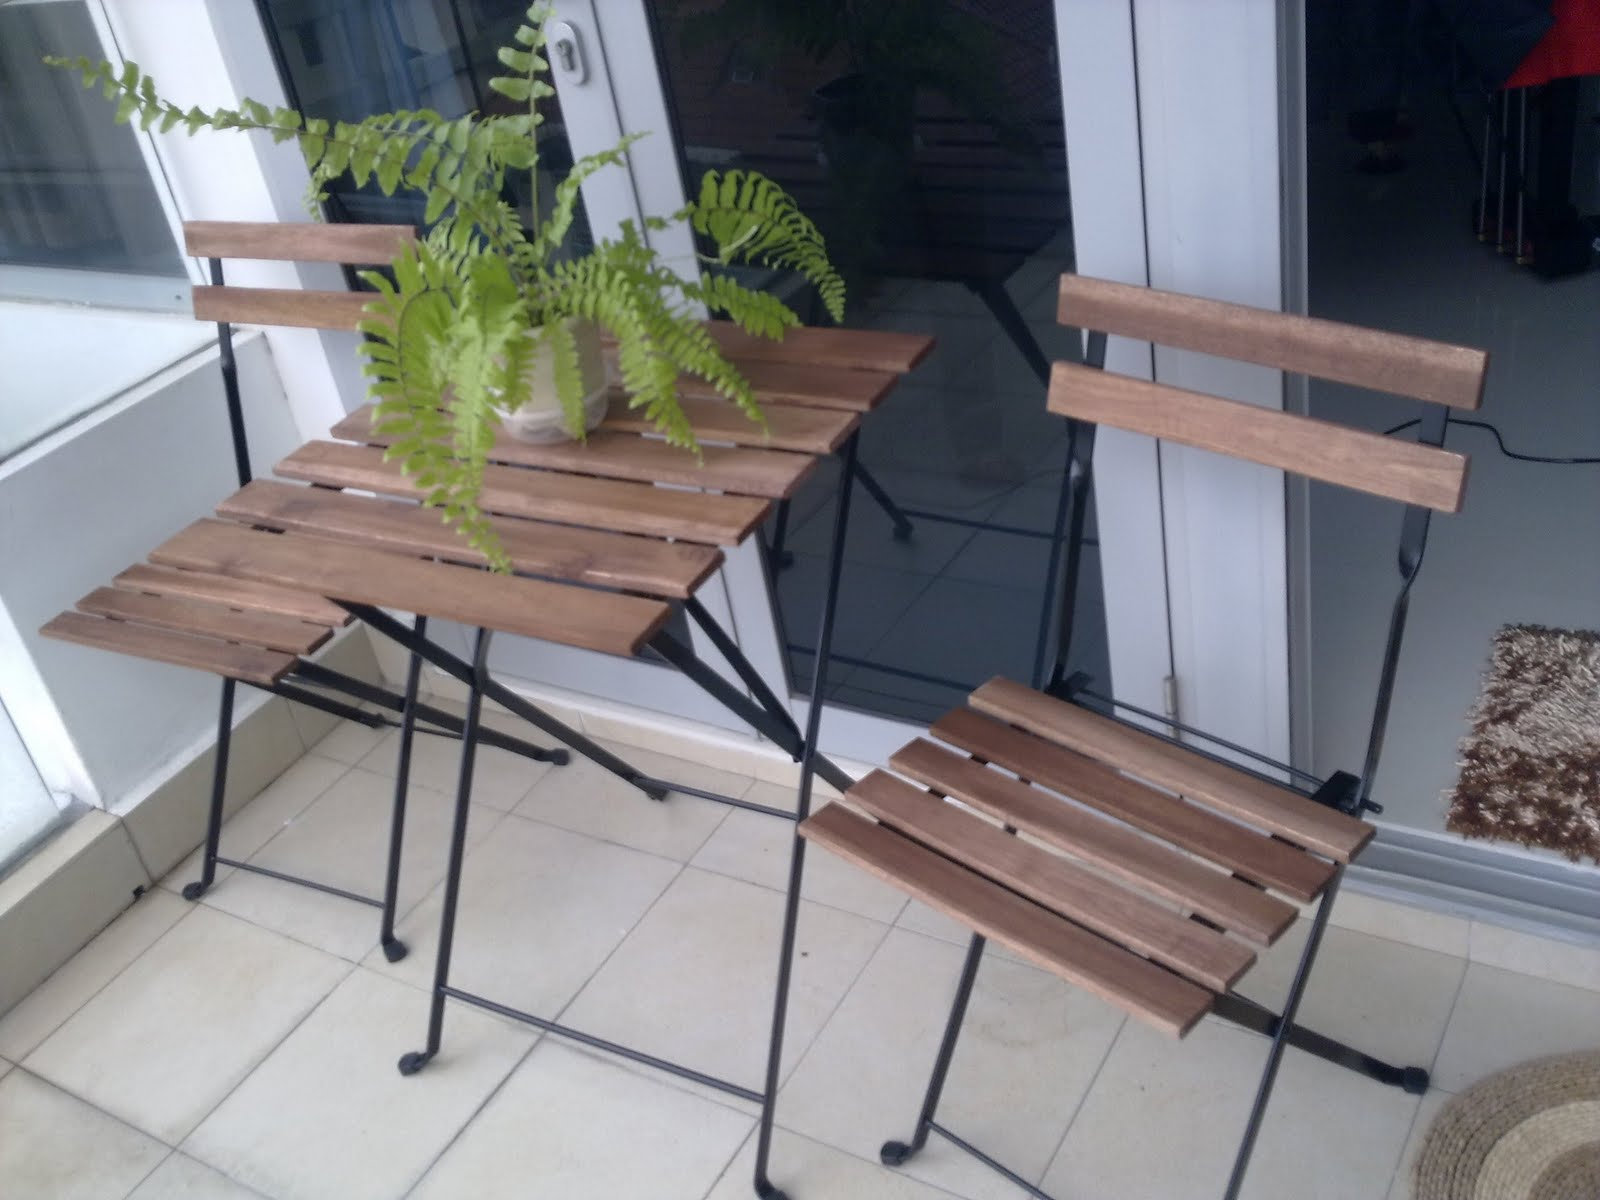 Ikea Patio Set | Patio Design Ideas